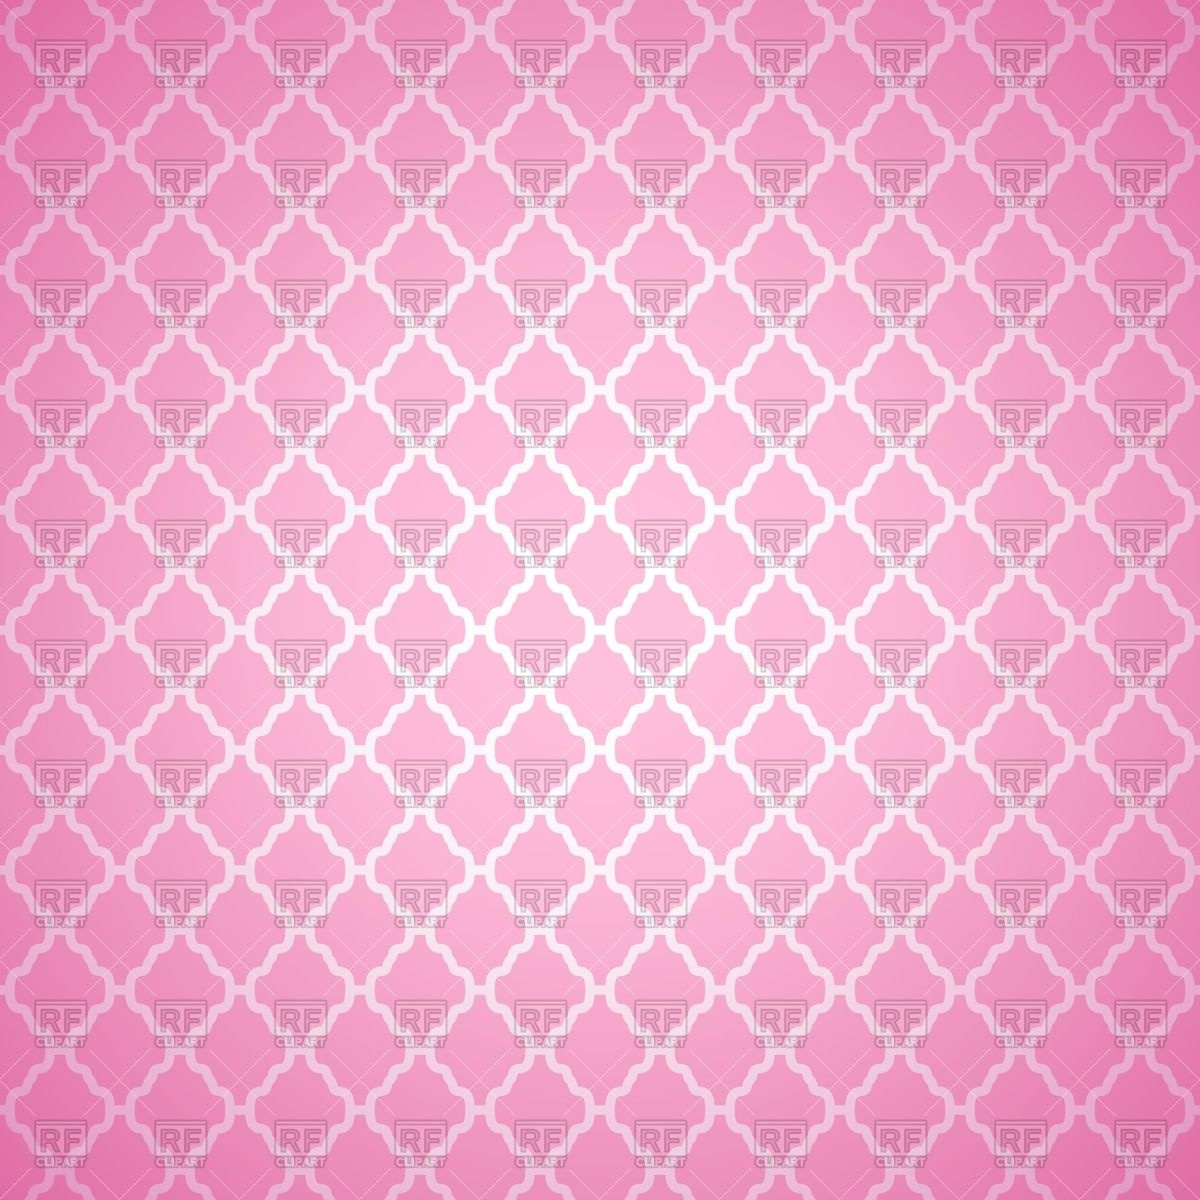 Pink Retro Wallpaper With Mesh Download Royalty Free Vector Clipart